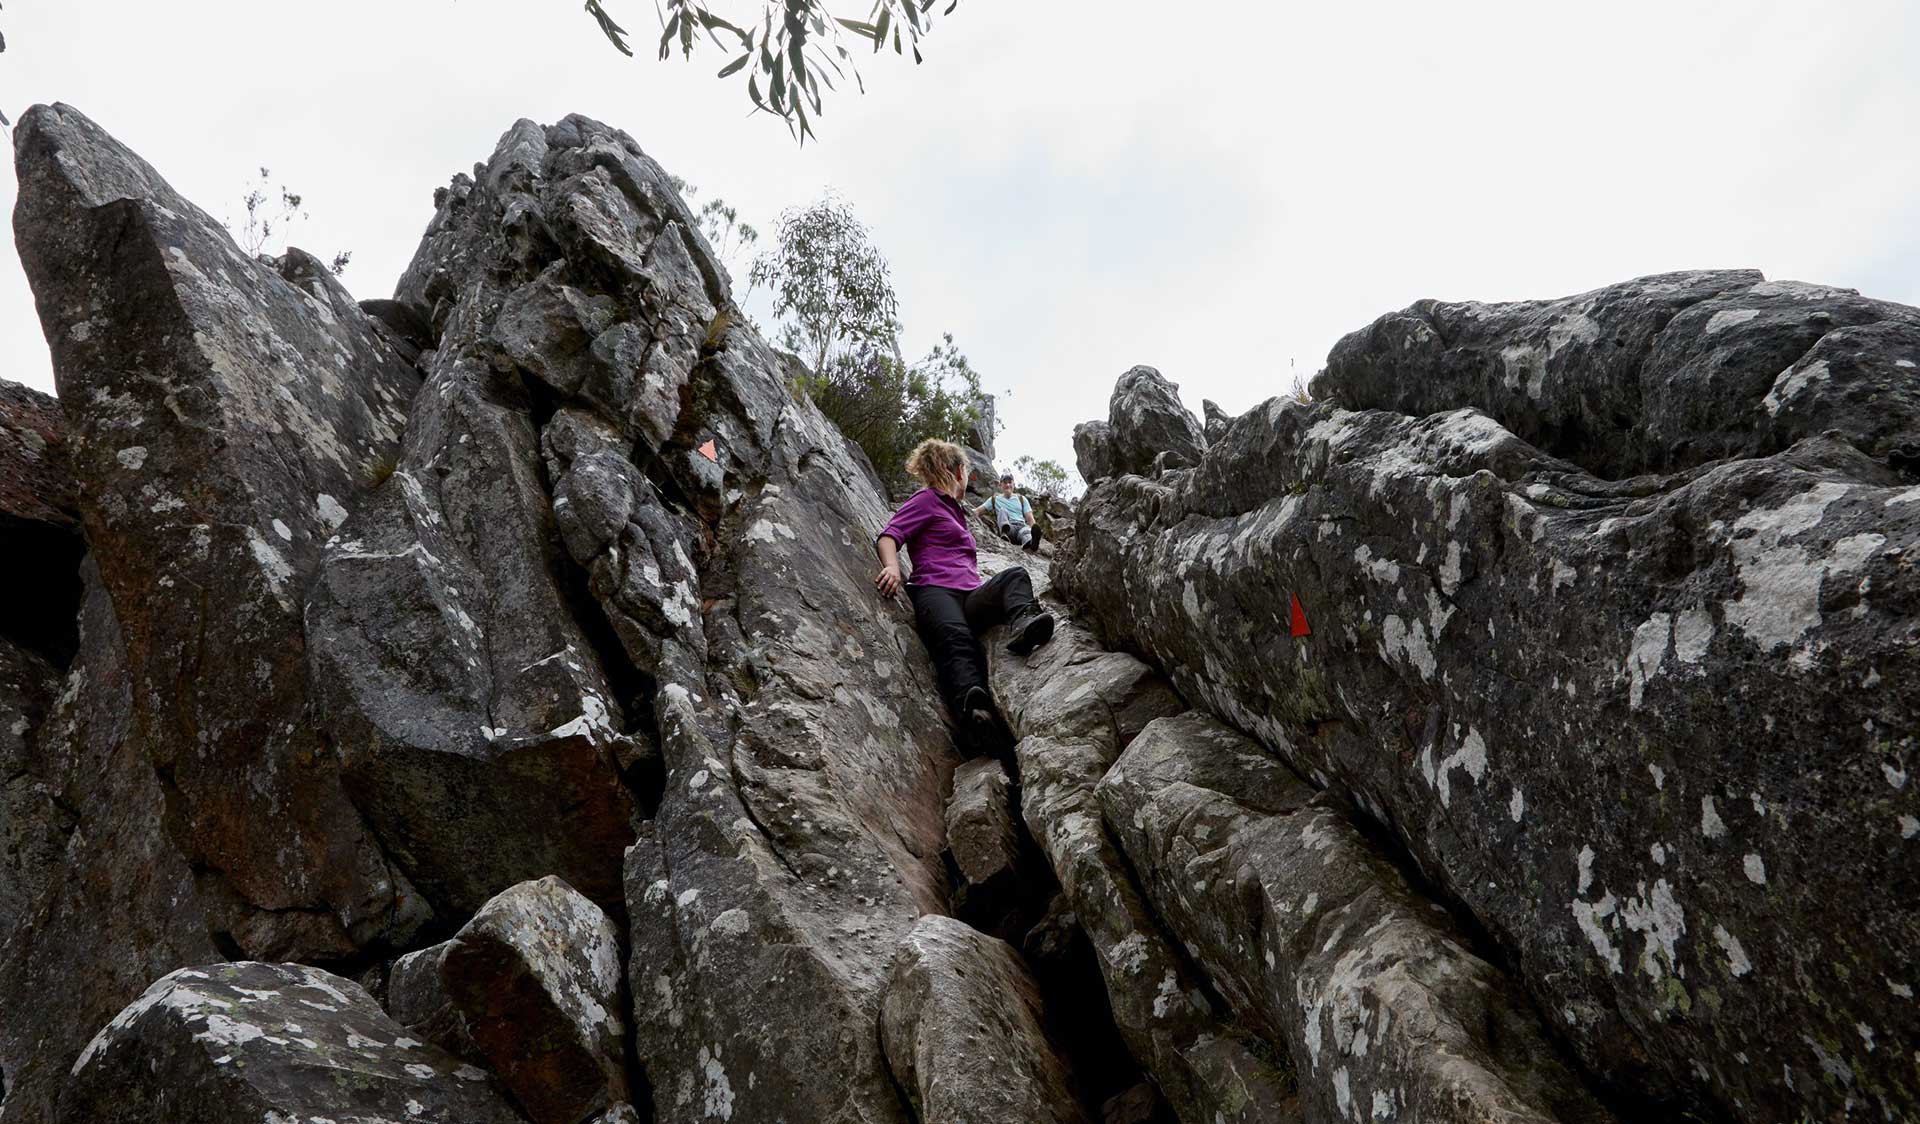 A woman in a purple shirt scrambles up through rocky terrain along the path.